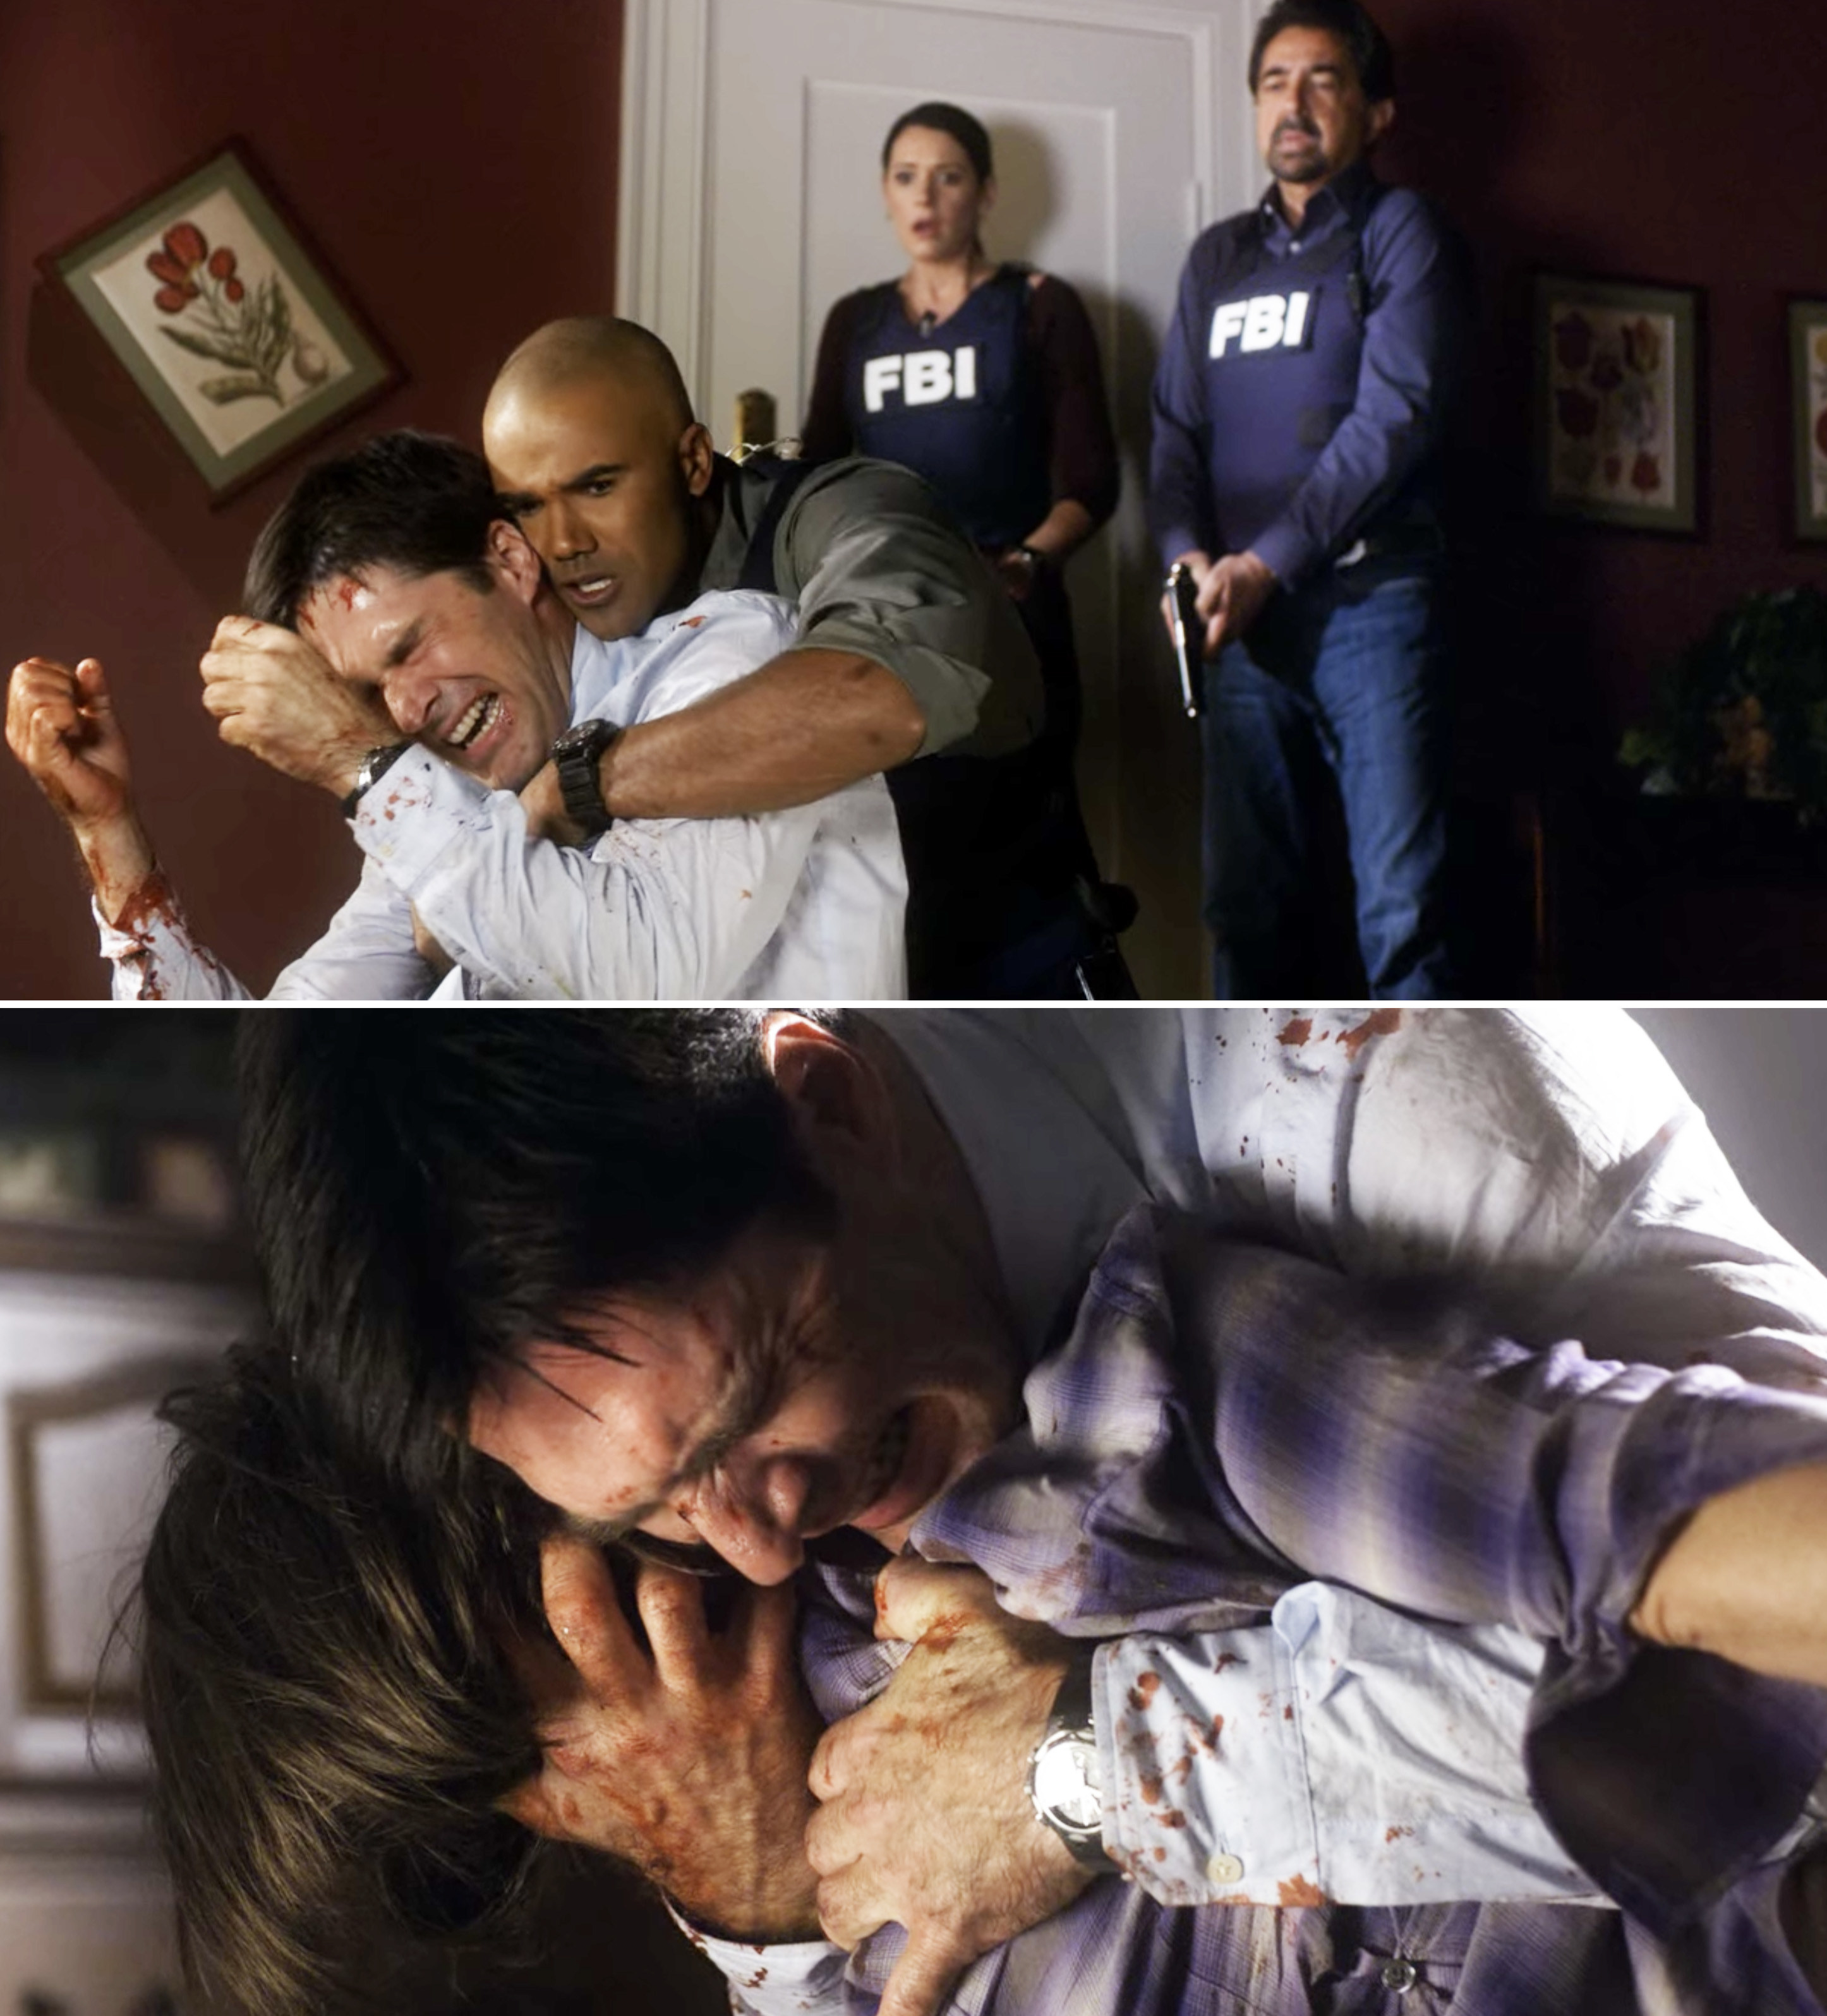 Hotch weeping and clutching Haley's body